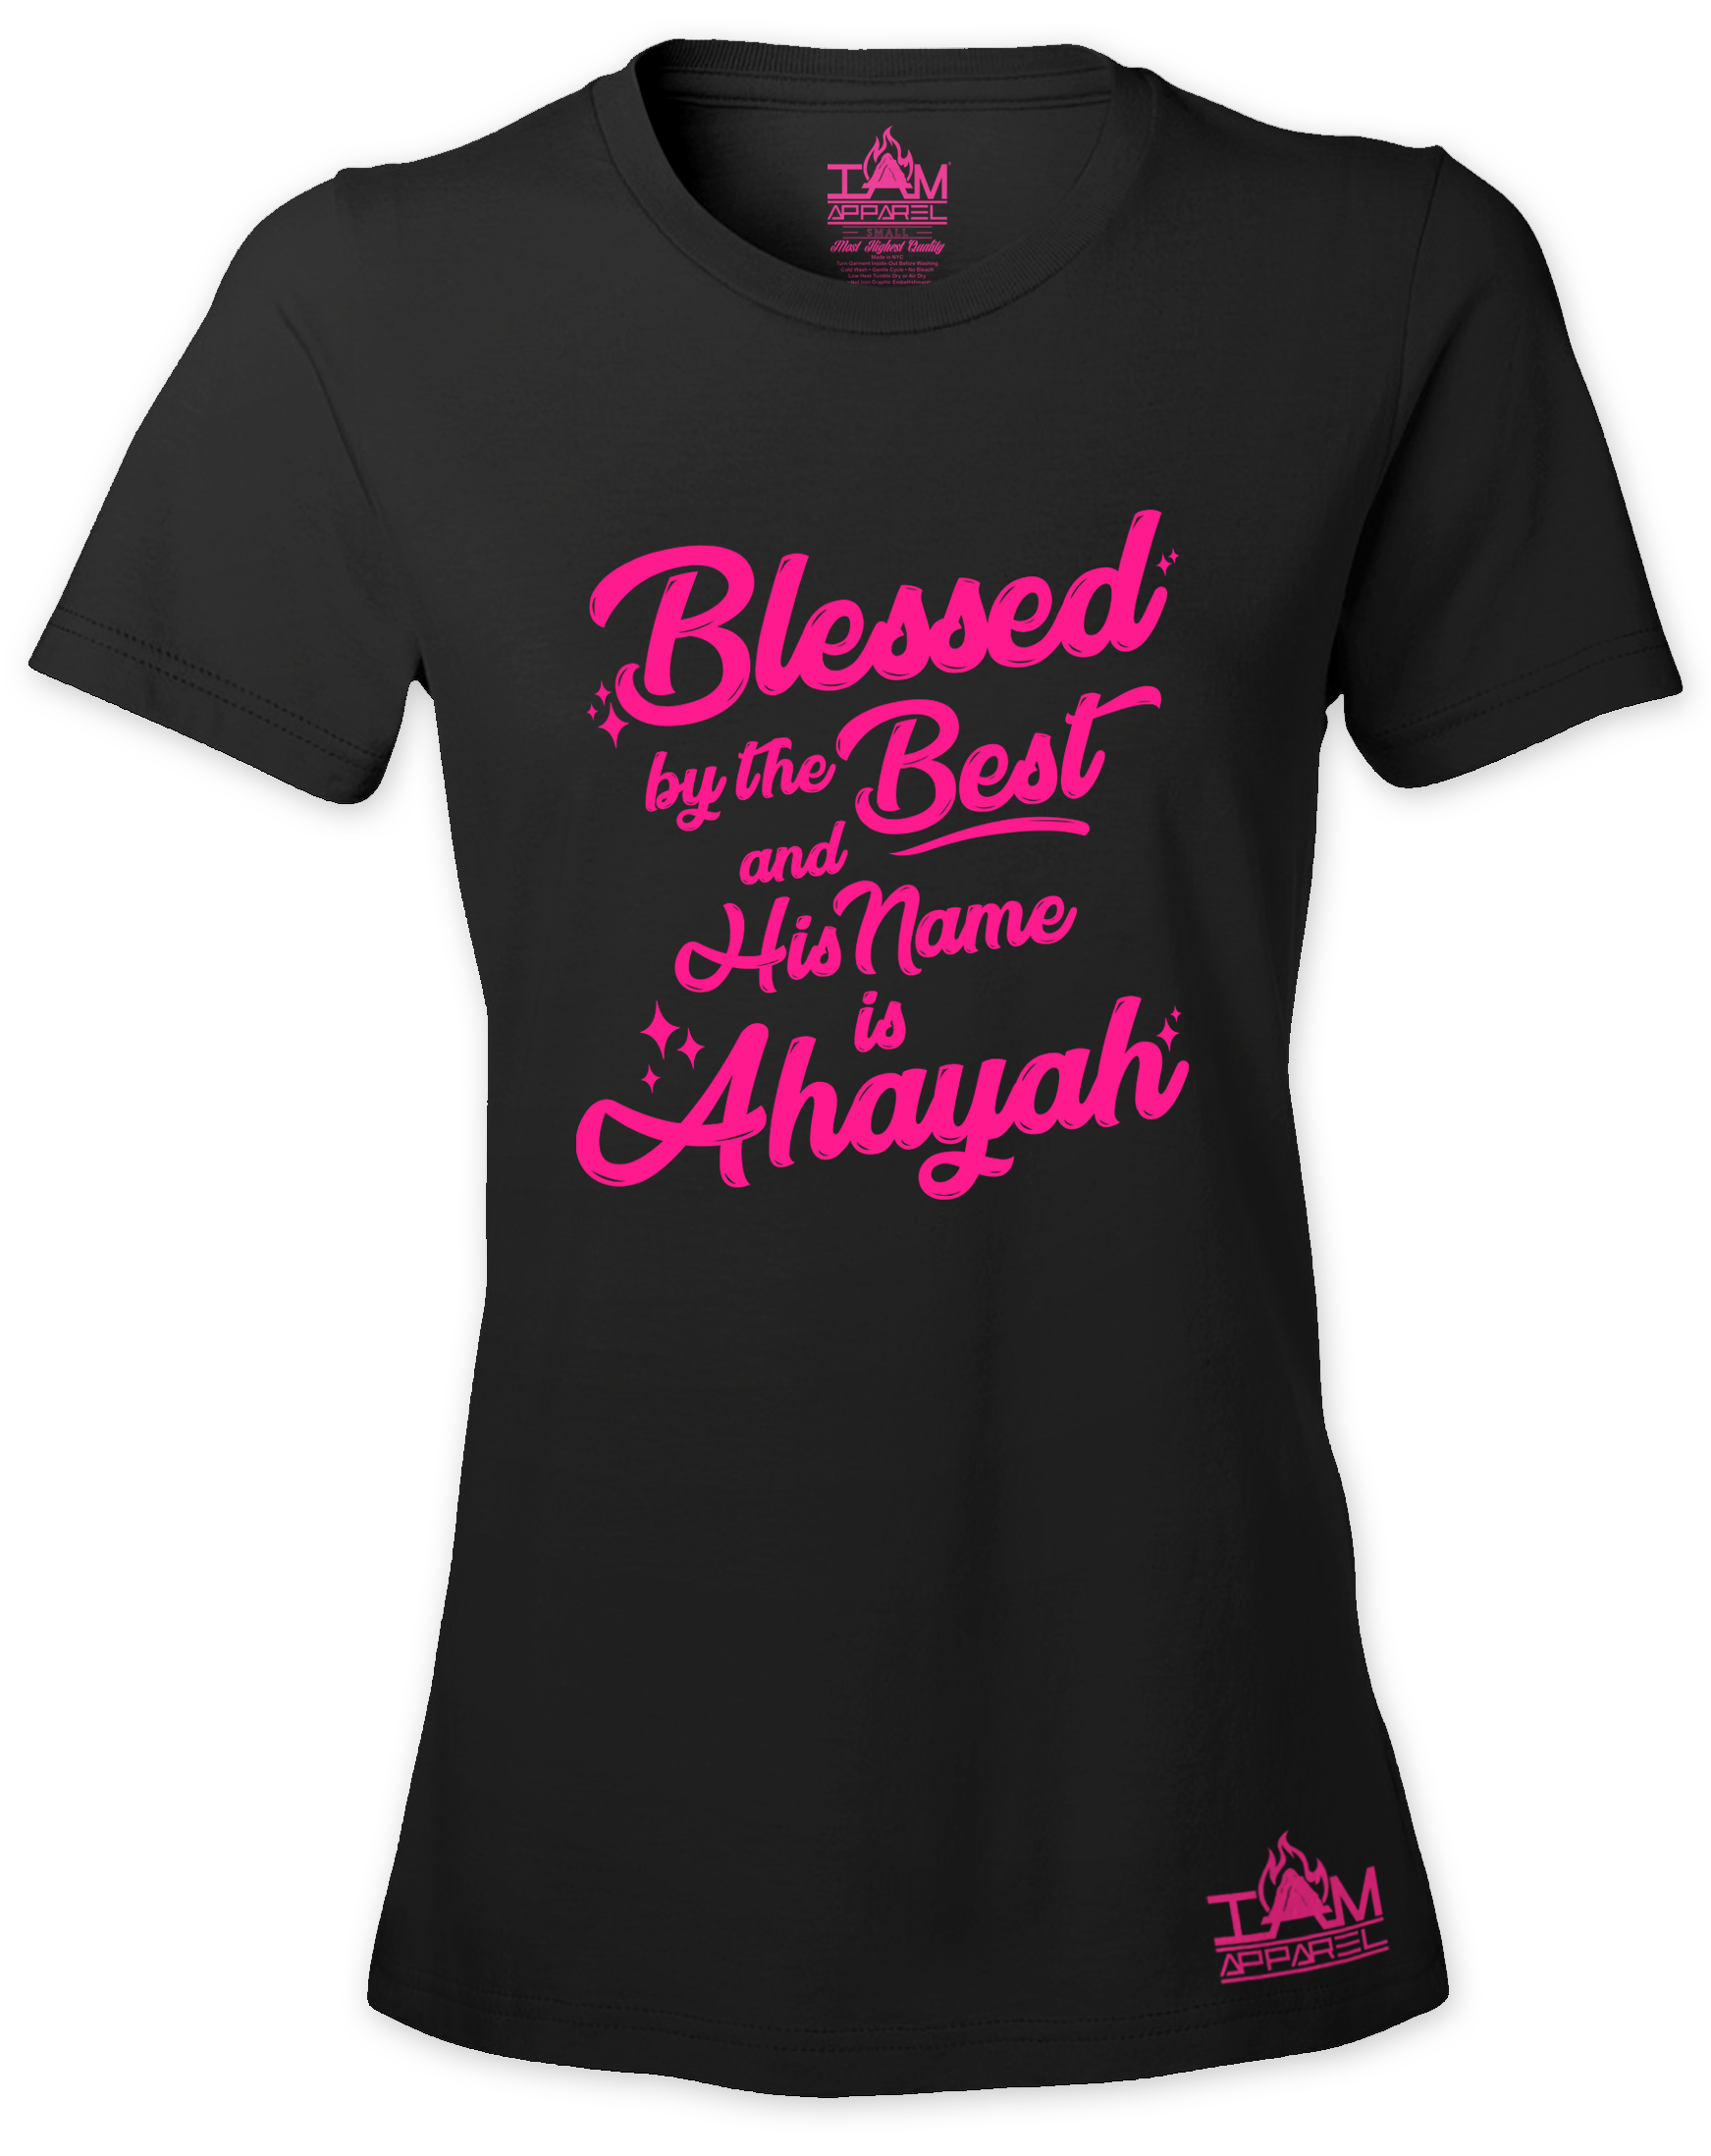 Woman's  HOT PINK SERIES Blessed by the best  Short Sleeved T-shirt